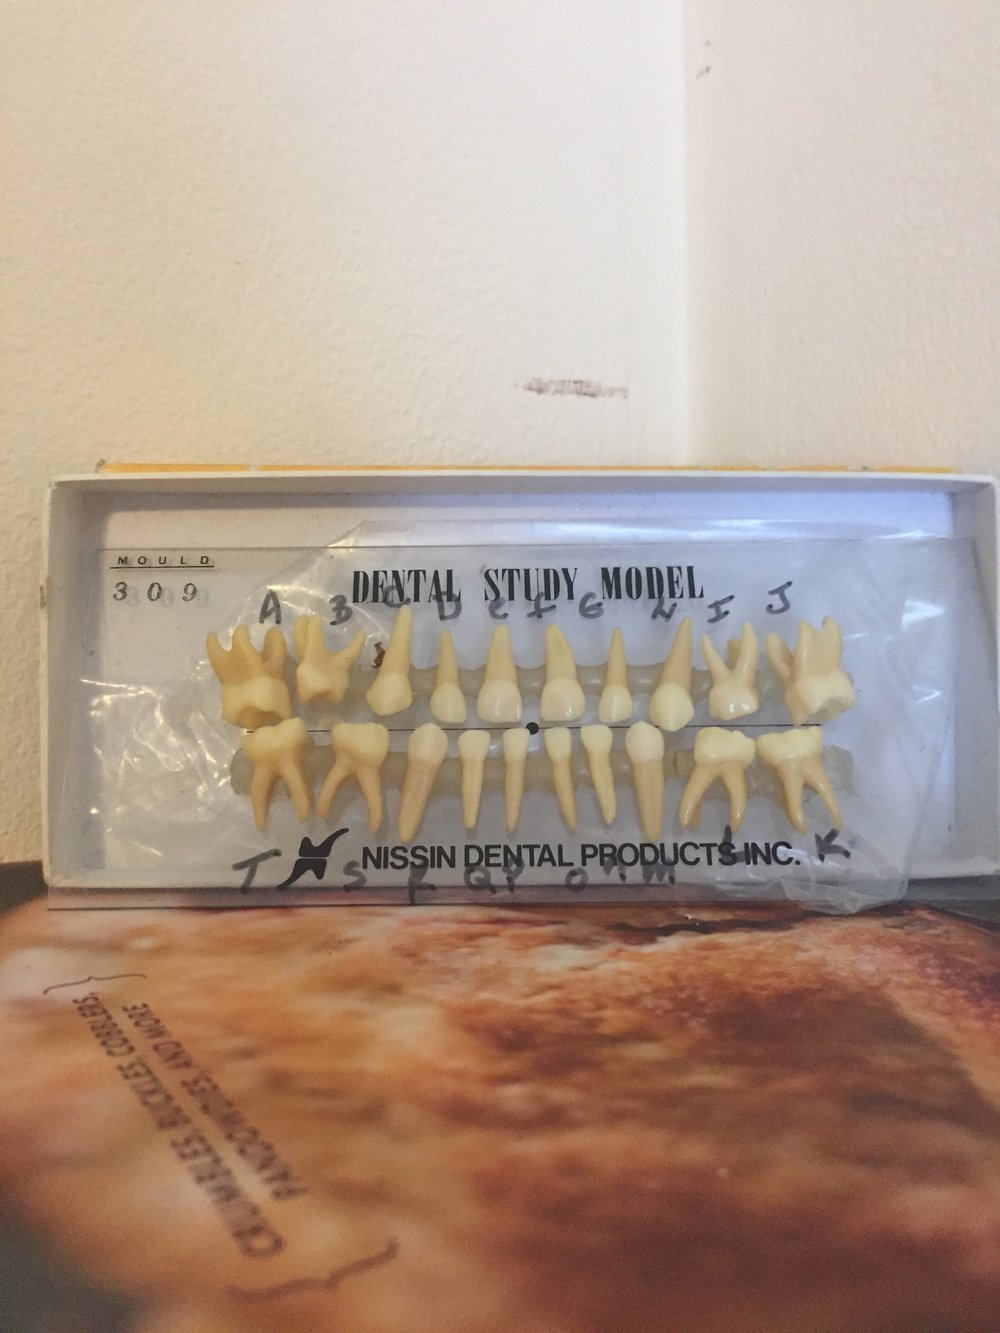 Now the amazing, incredible teeth get to sit on top of a book about pie.